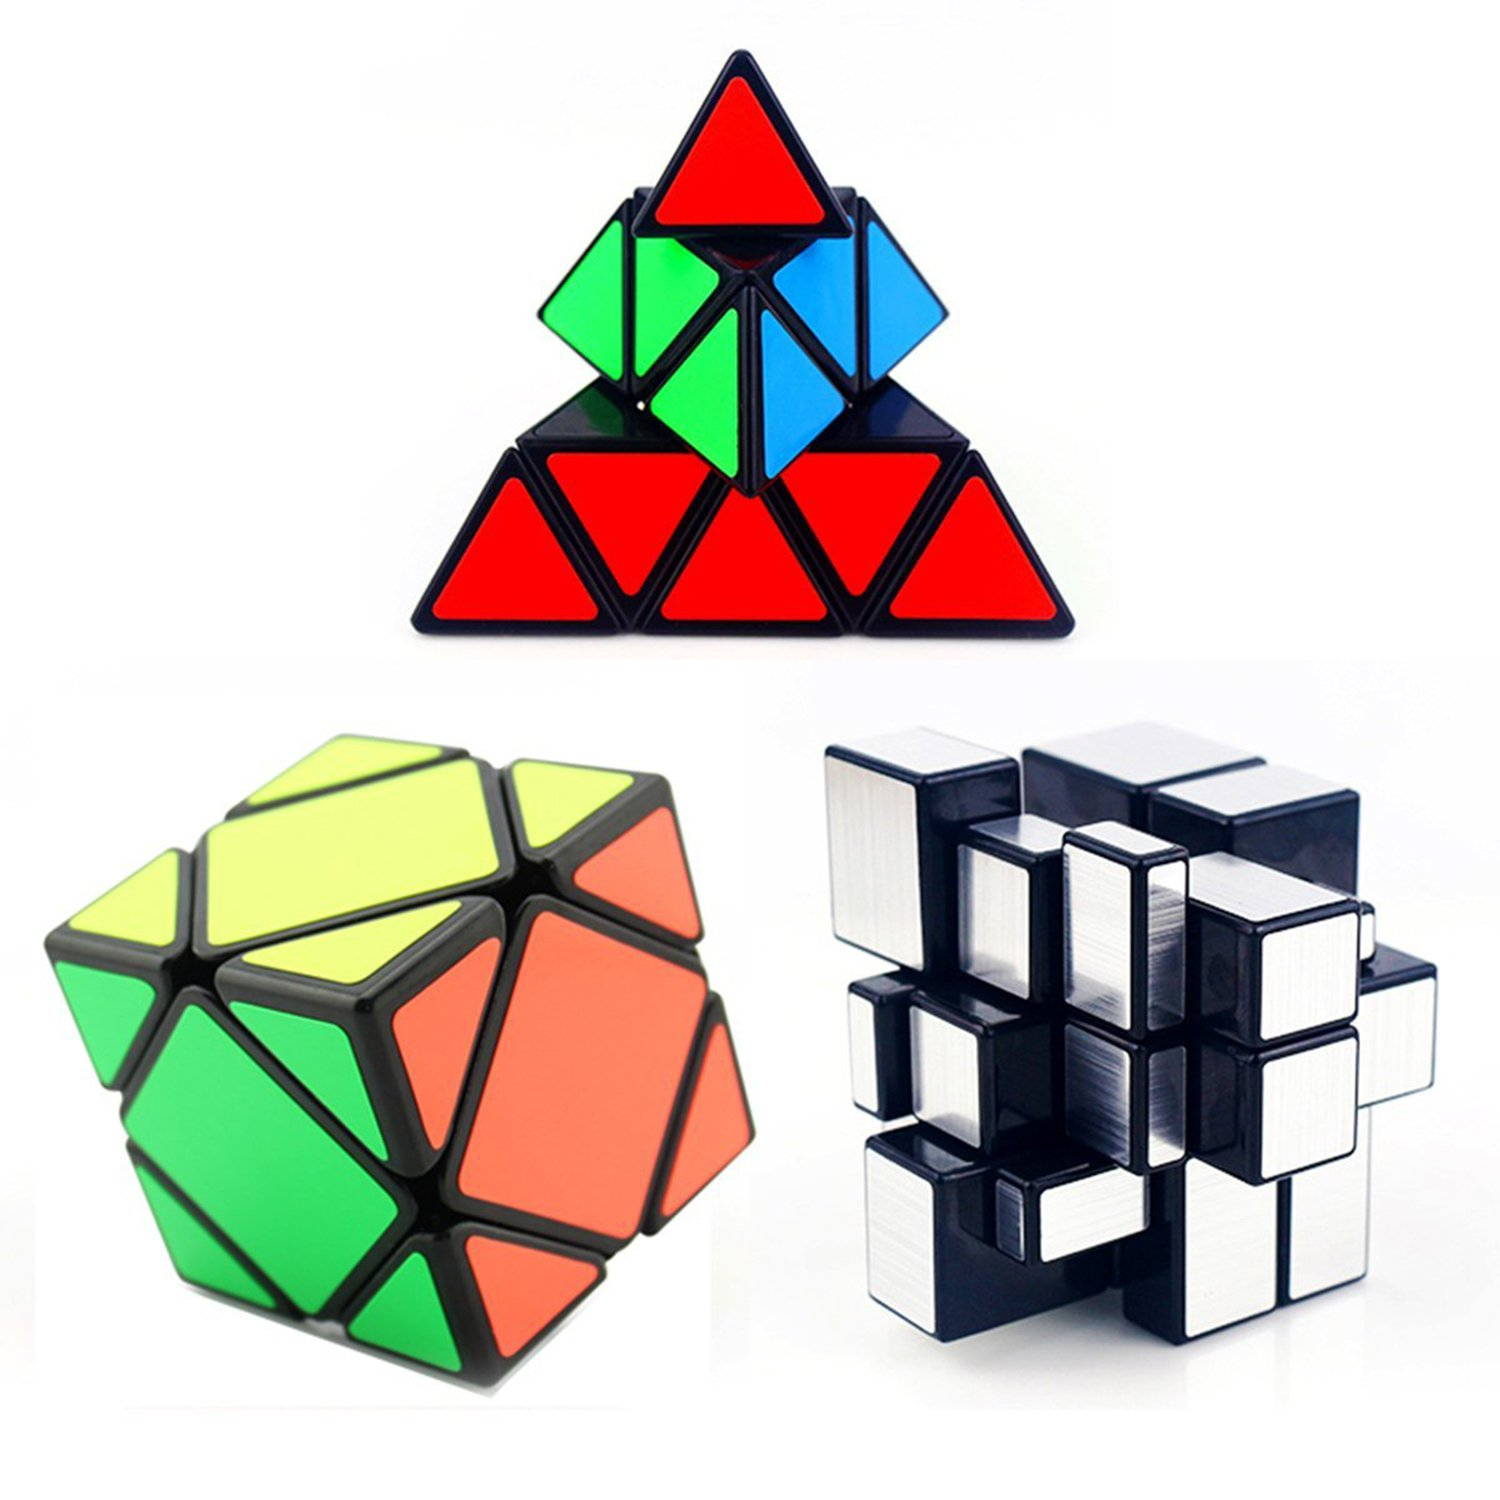 3-packed shengshou 3X3 Pyraminx +silver mirror + Skewb magic cube puzzle set by toys Ting-w